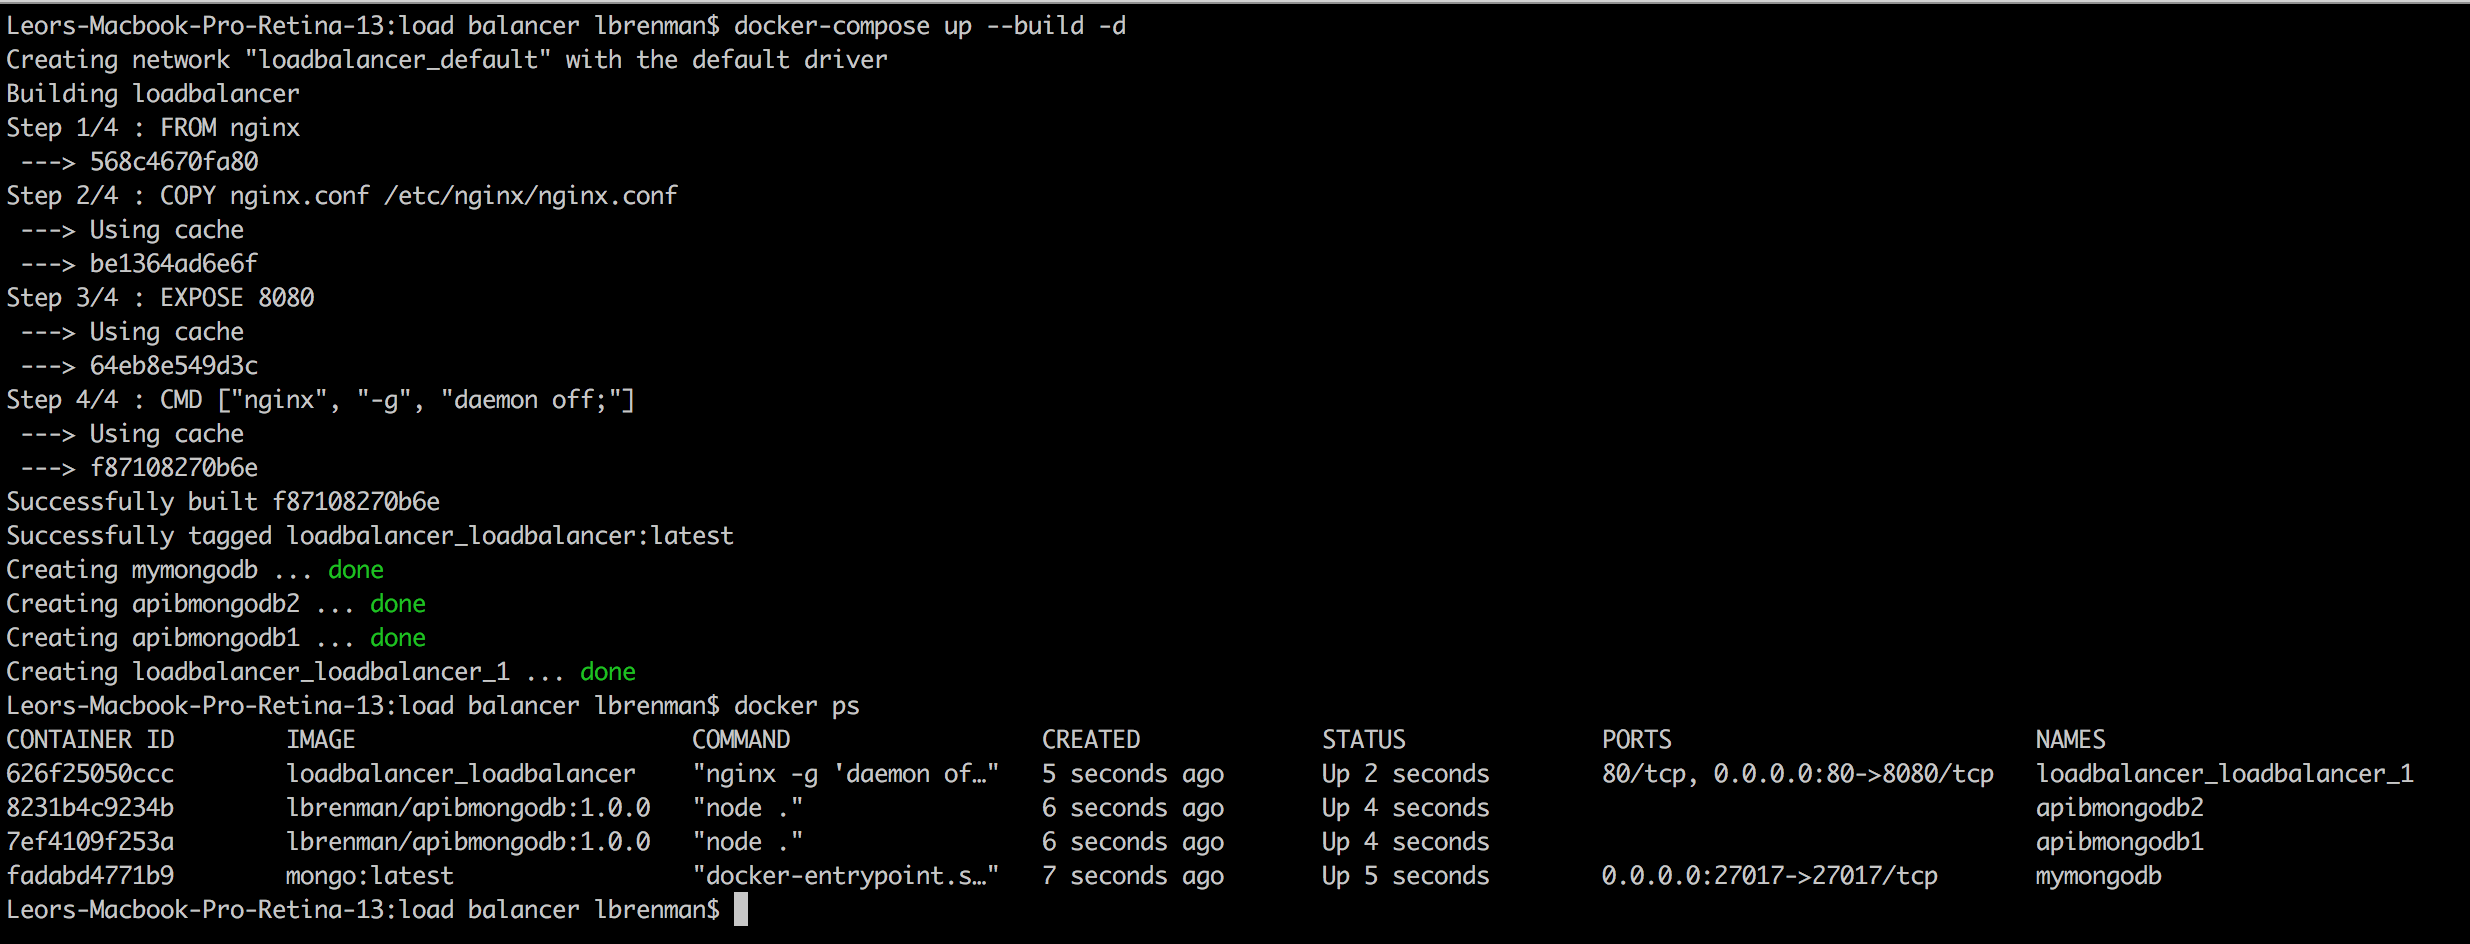 results of docker ps command